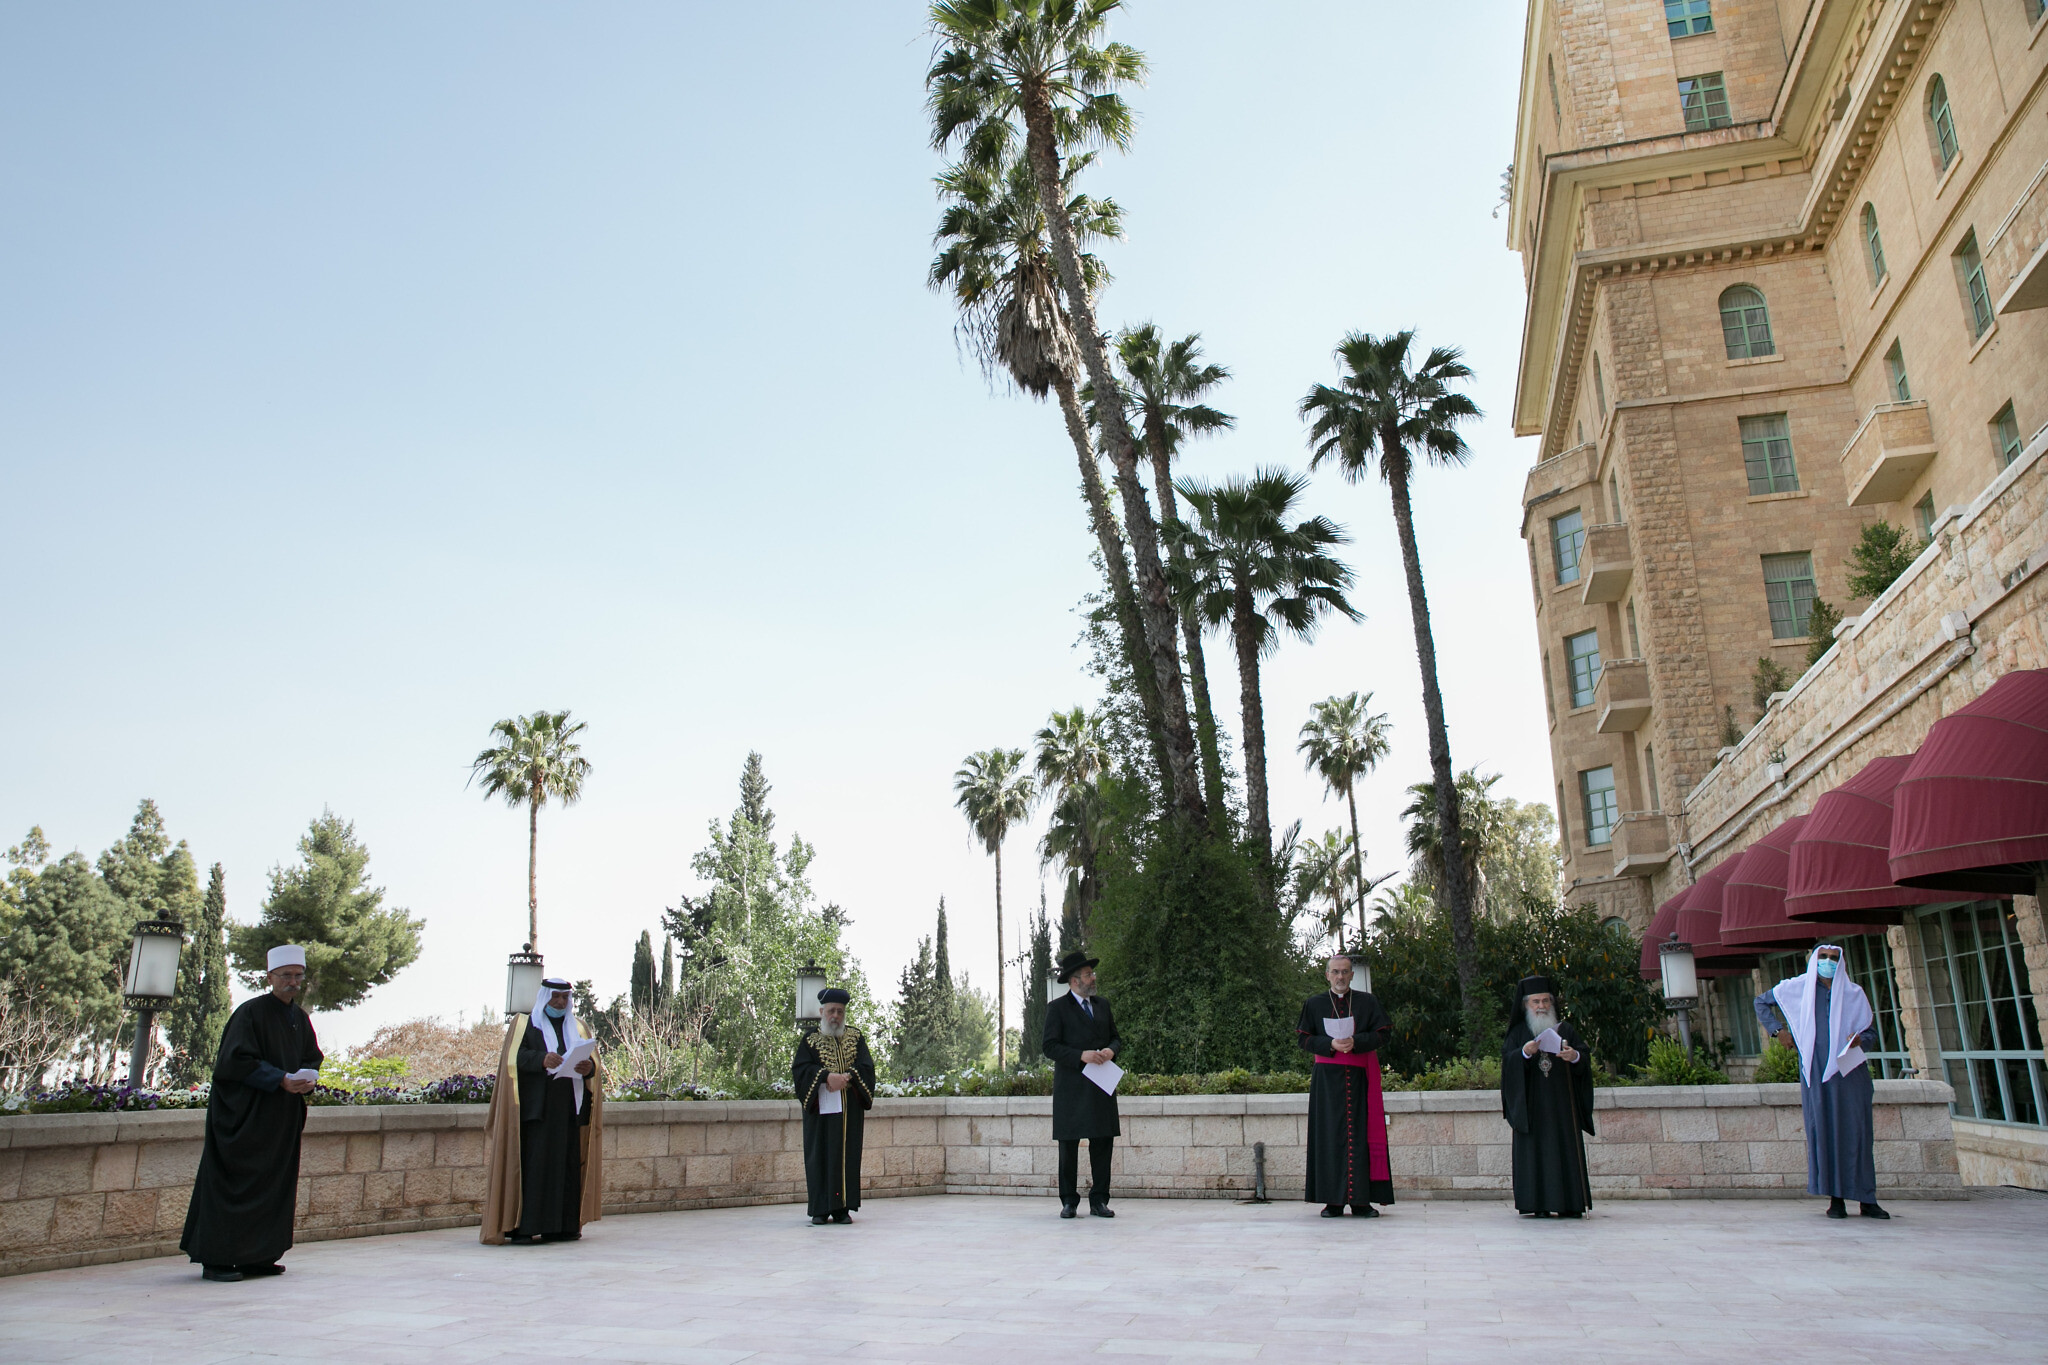 Avert the plague': Religious leaders in J'lem say joint prayer ...